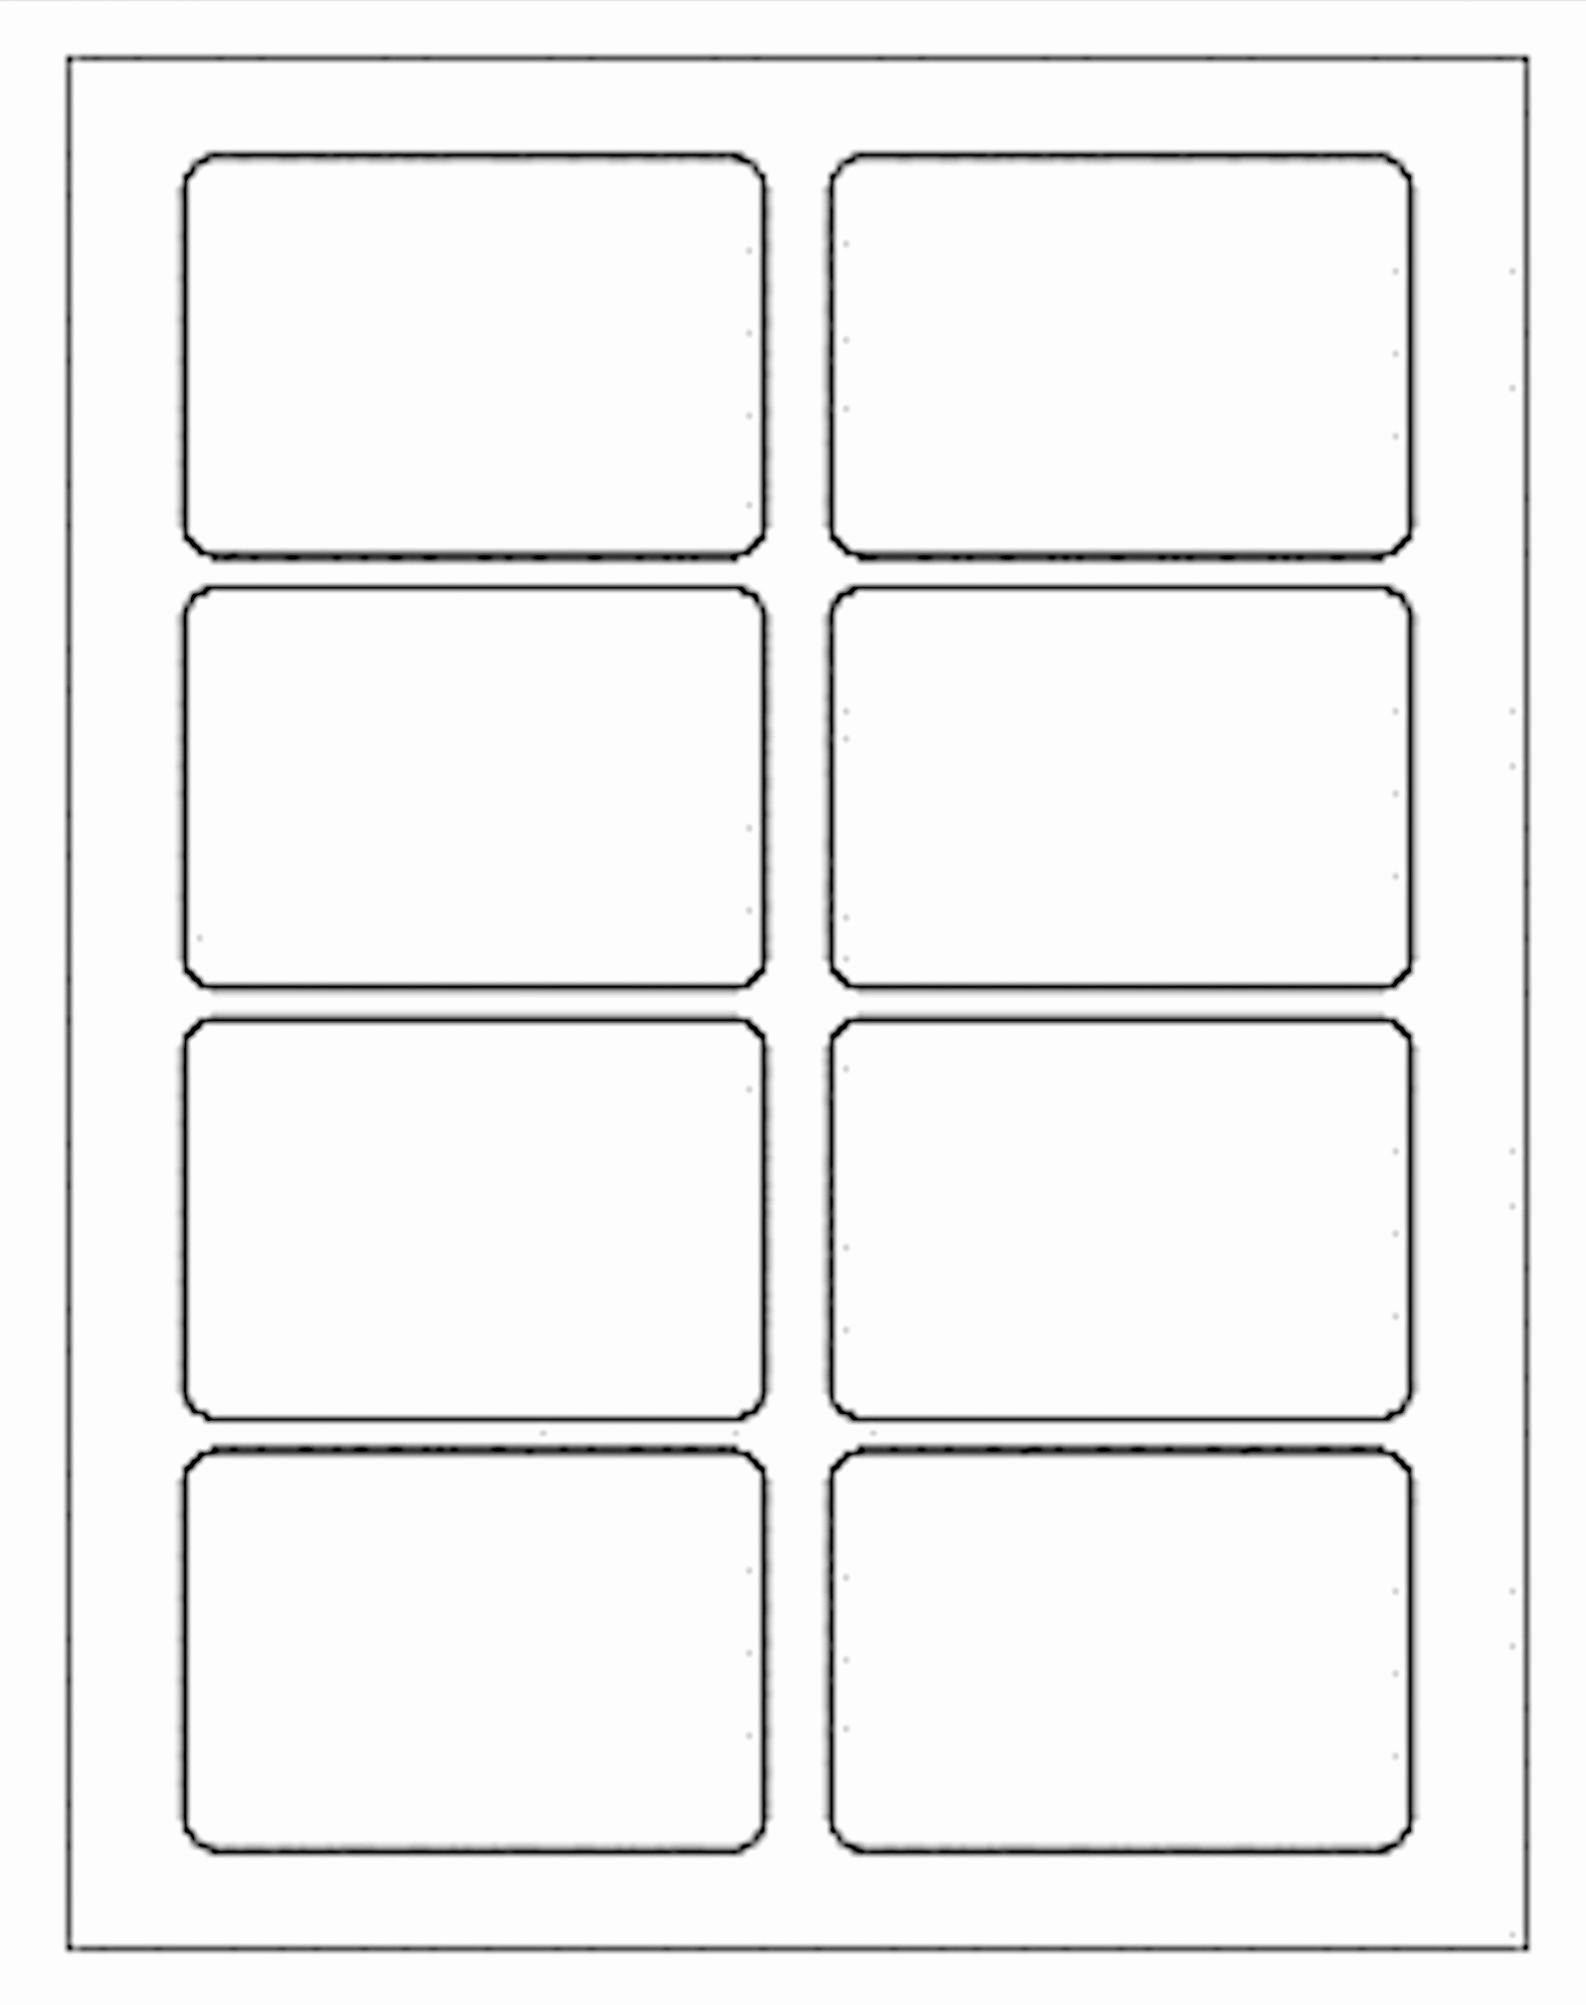 Free Template for Name Tags Fresh Name Tag Template Free Printable Word